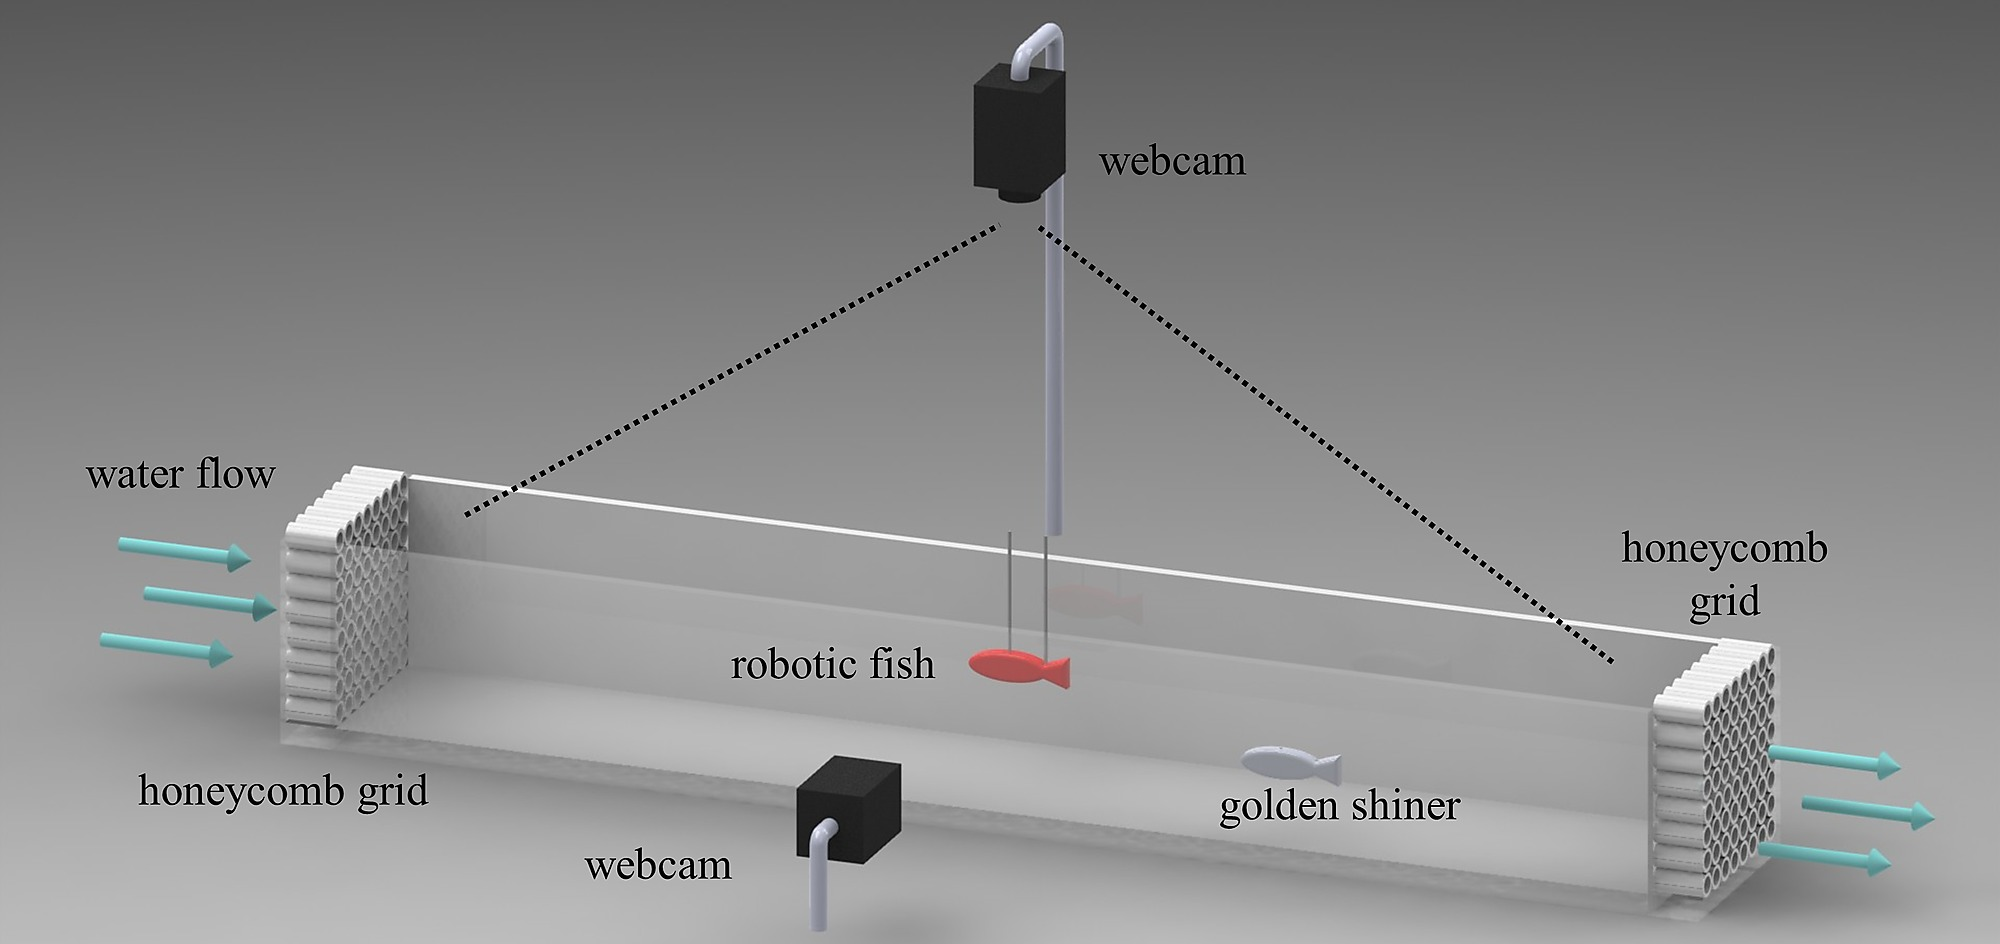 Schematic Of The Experimental Setup Behavioral Experiment Tunnel Lighting Diagram Bioinspired Red Robot And An Individual Golden Shiner Swimming In A Section